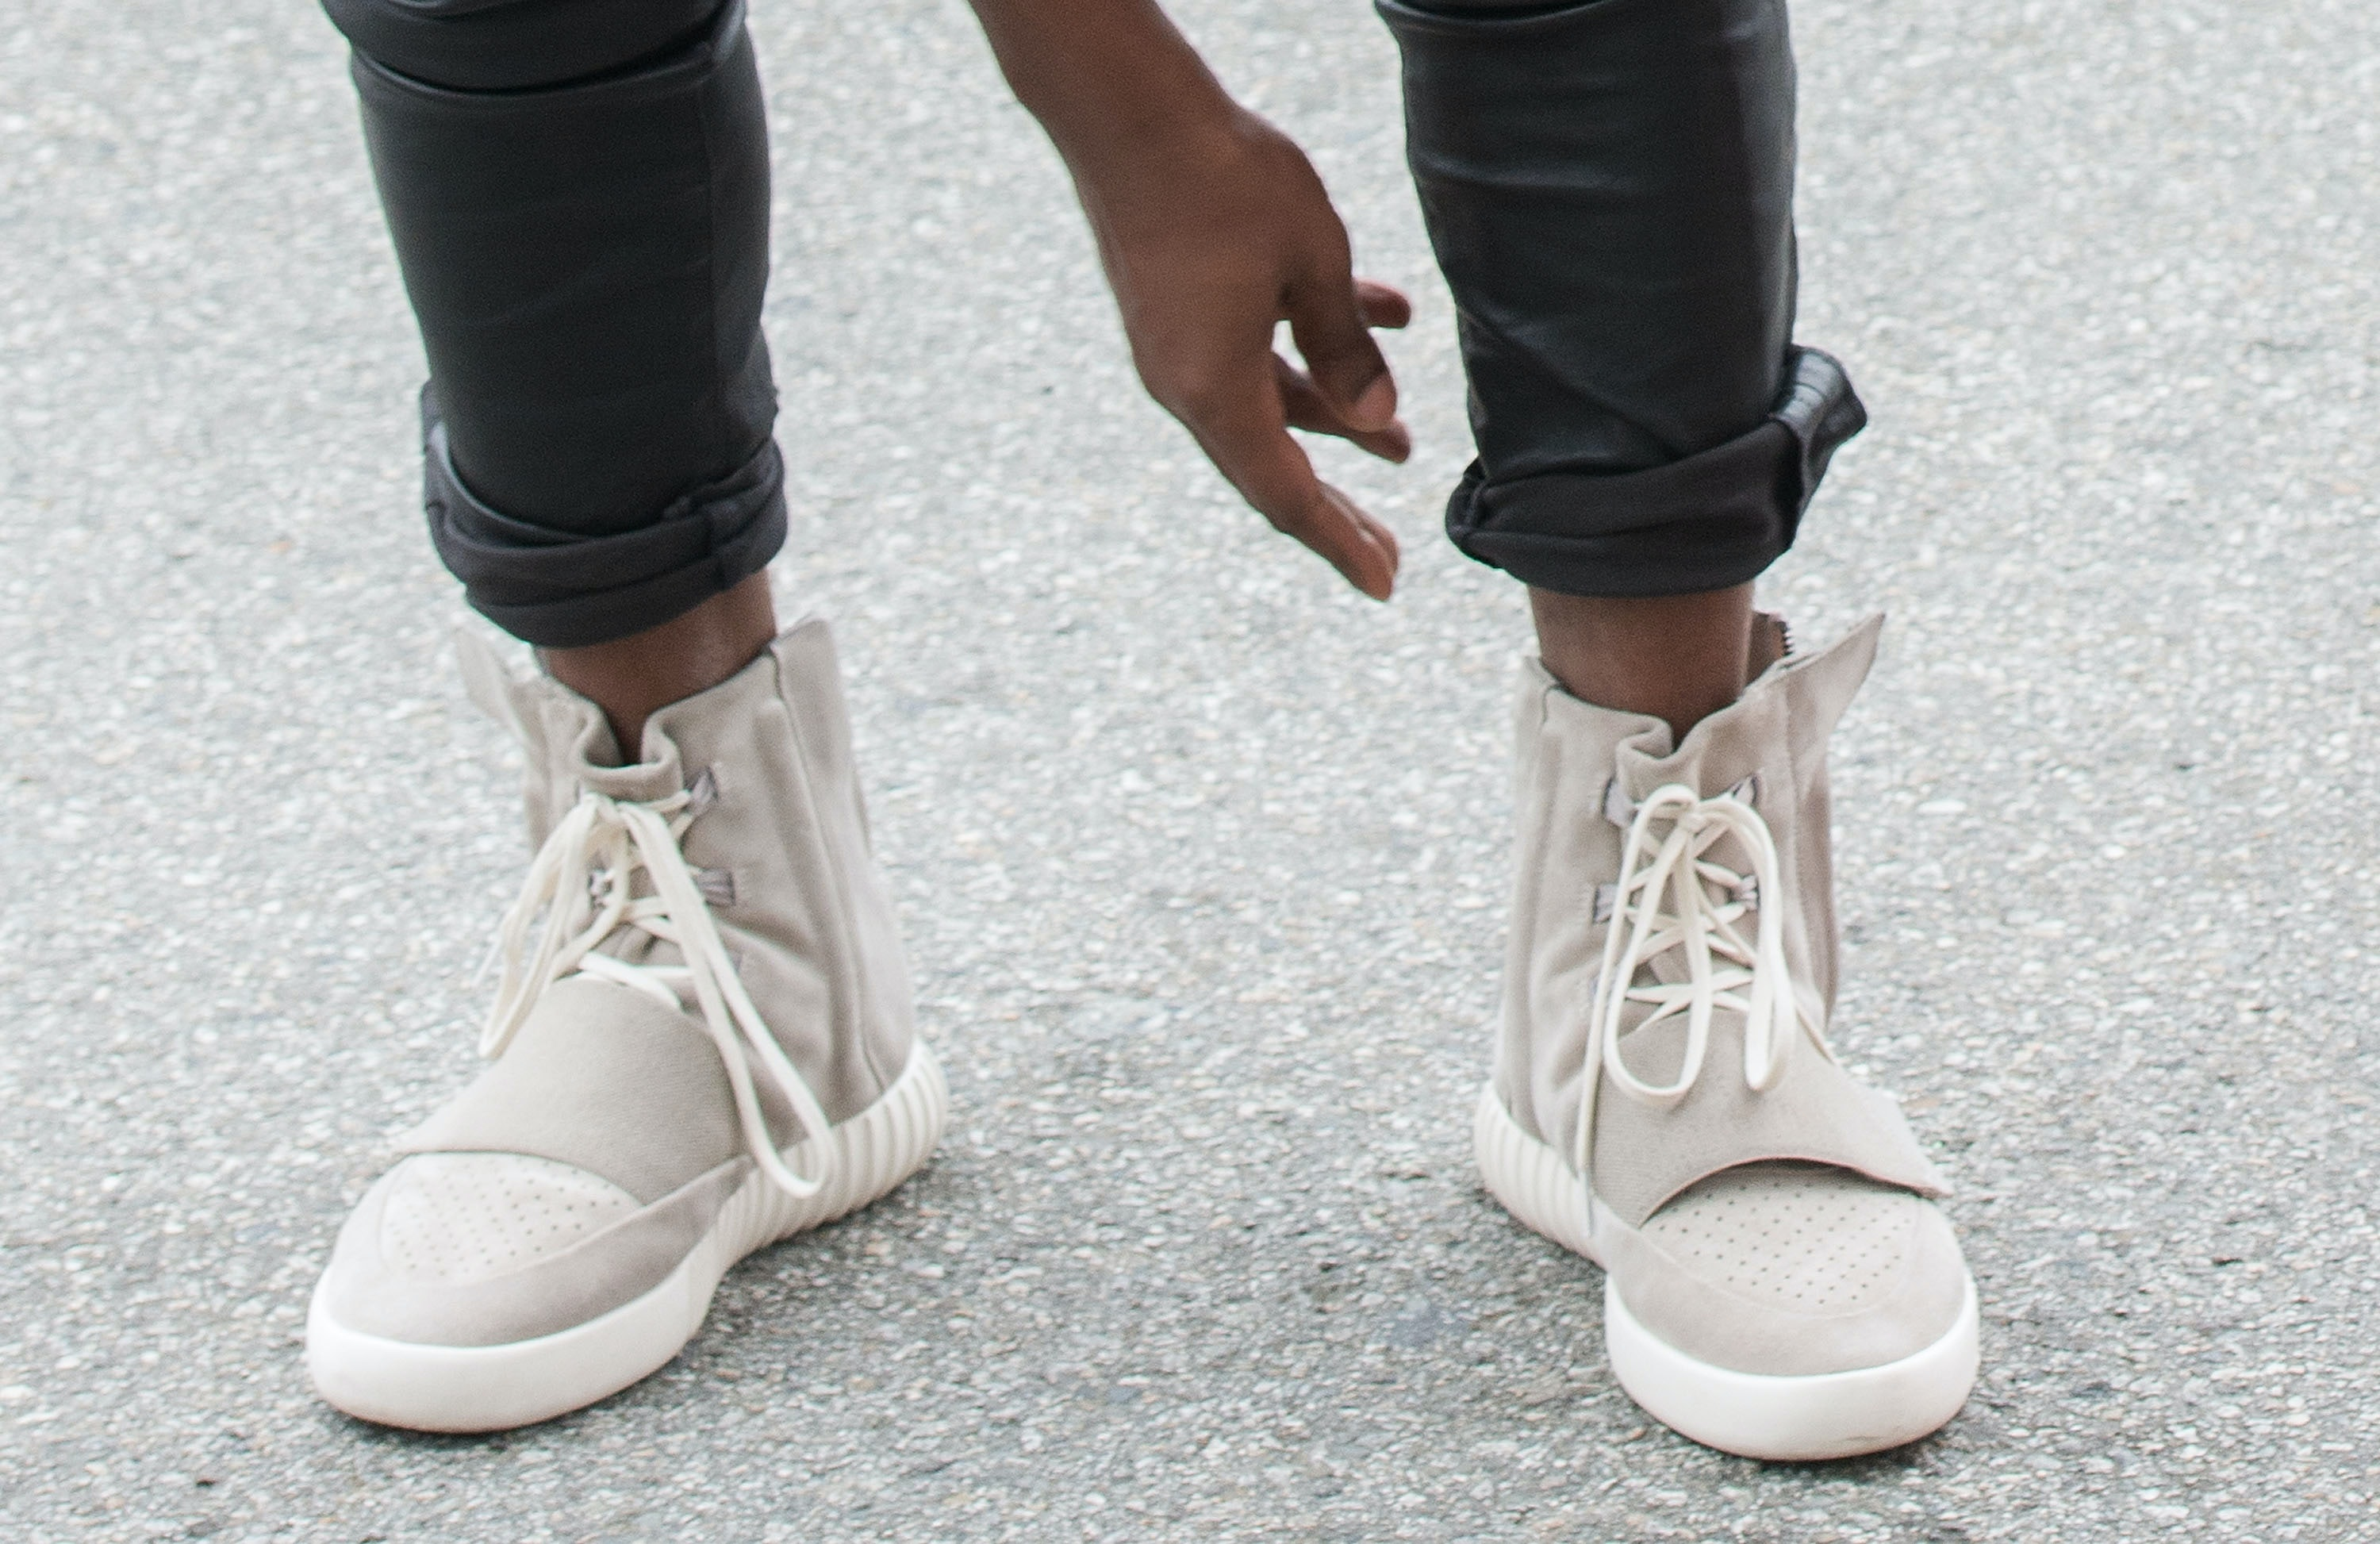 super popular d629e 6f8a2 When Is The New Yeezy Boost 750 Coming Out? Mark Your ...